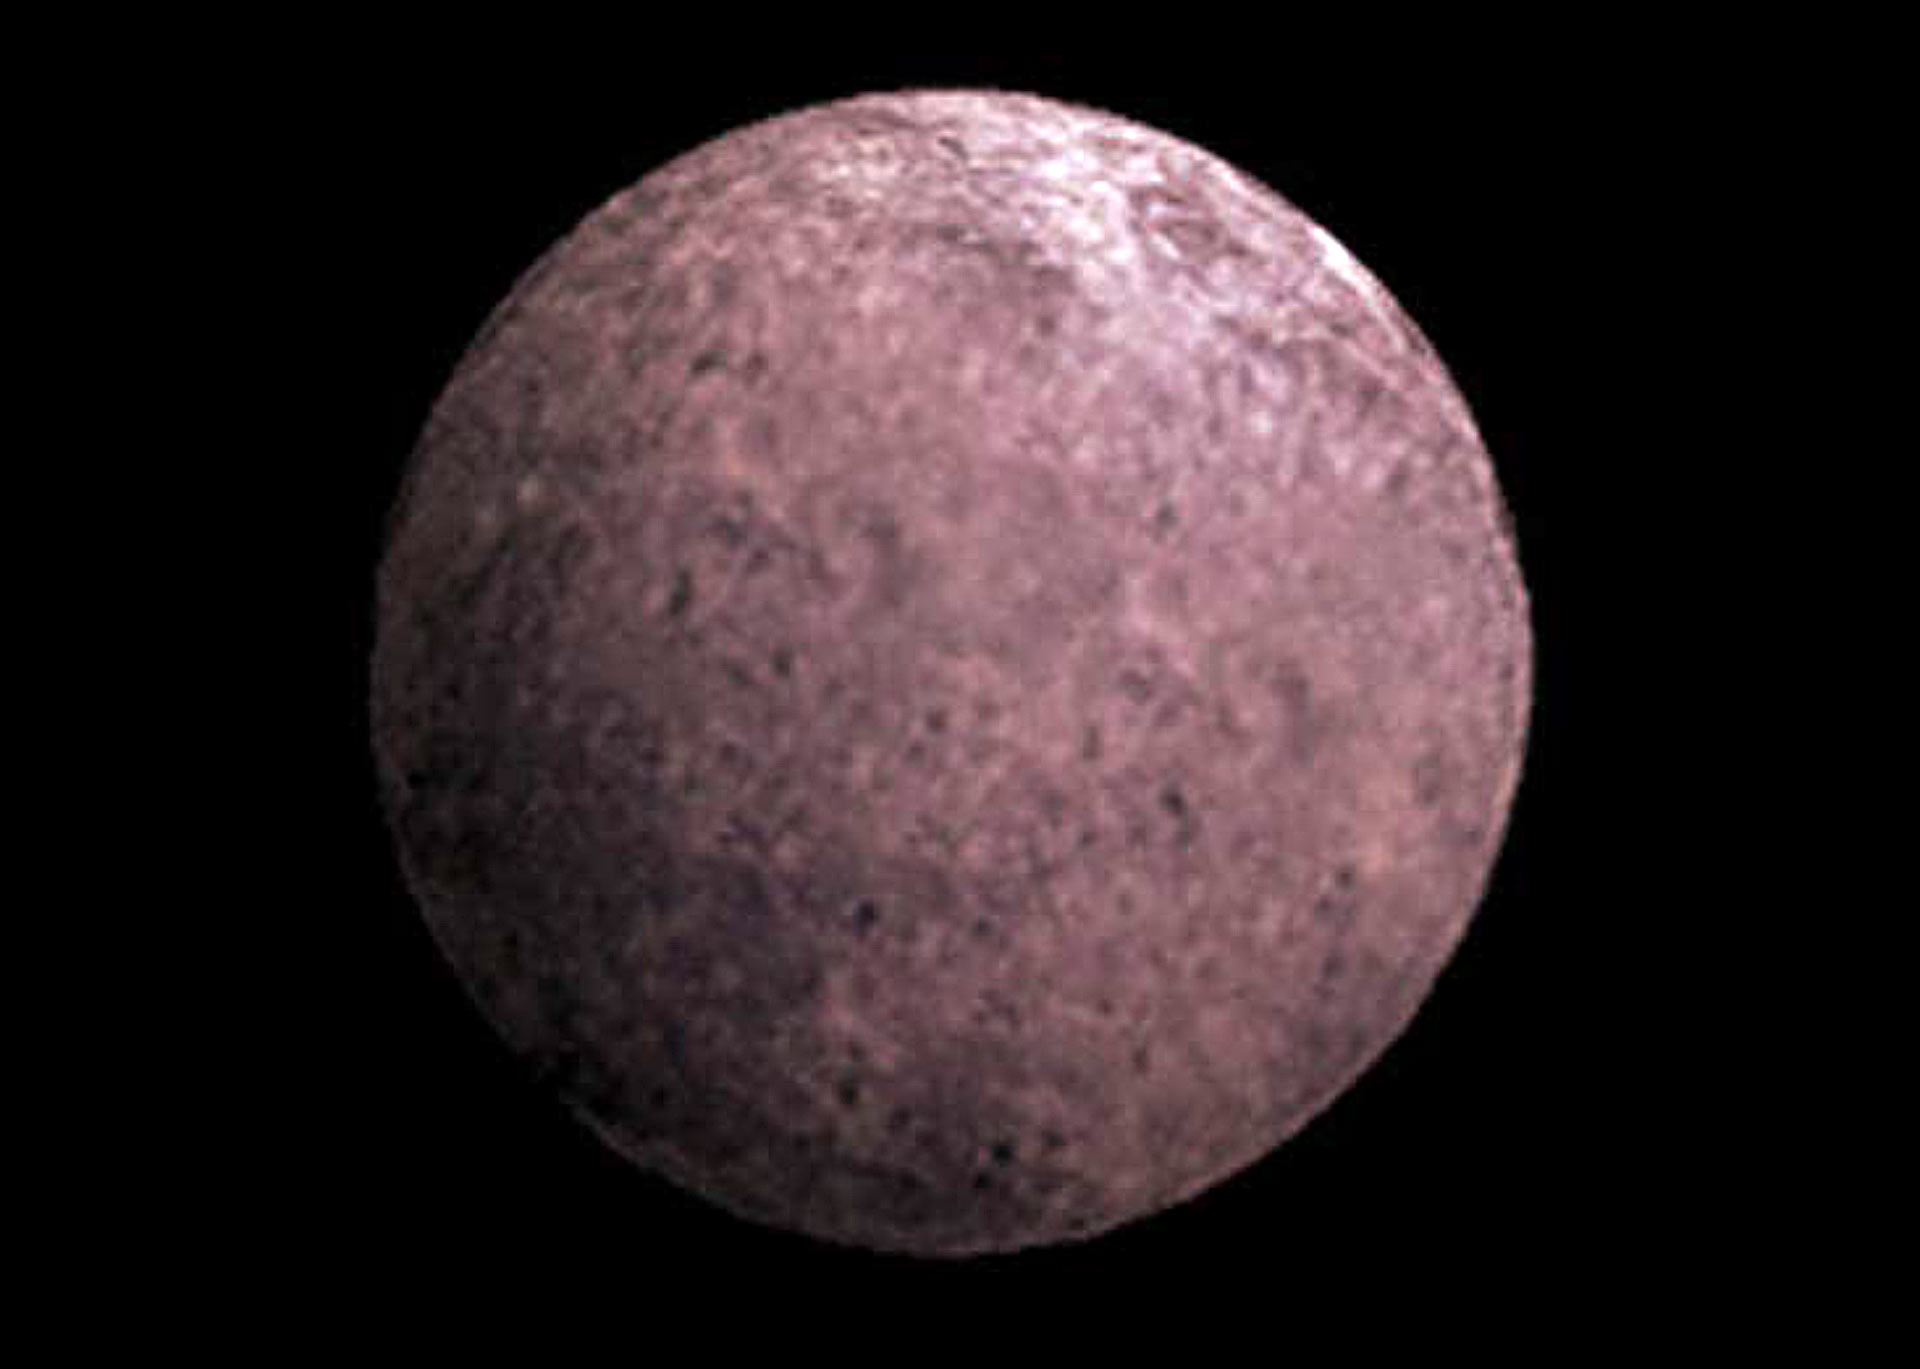 2007 OR10 is Third-Largest Dwarf Planet, Astronomers Say ...